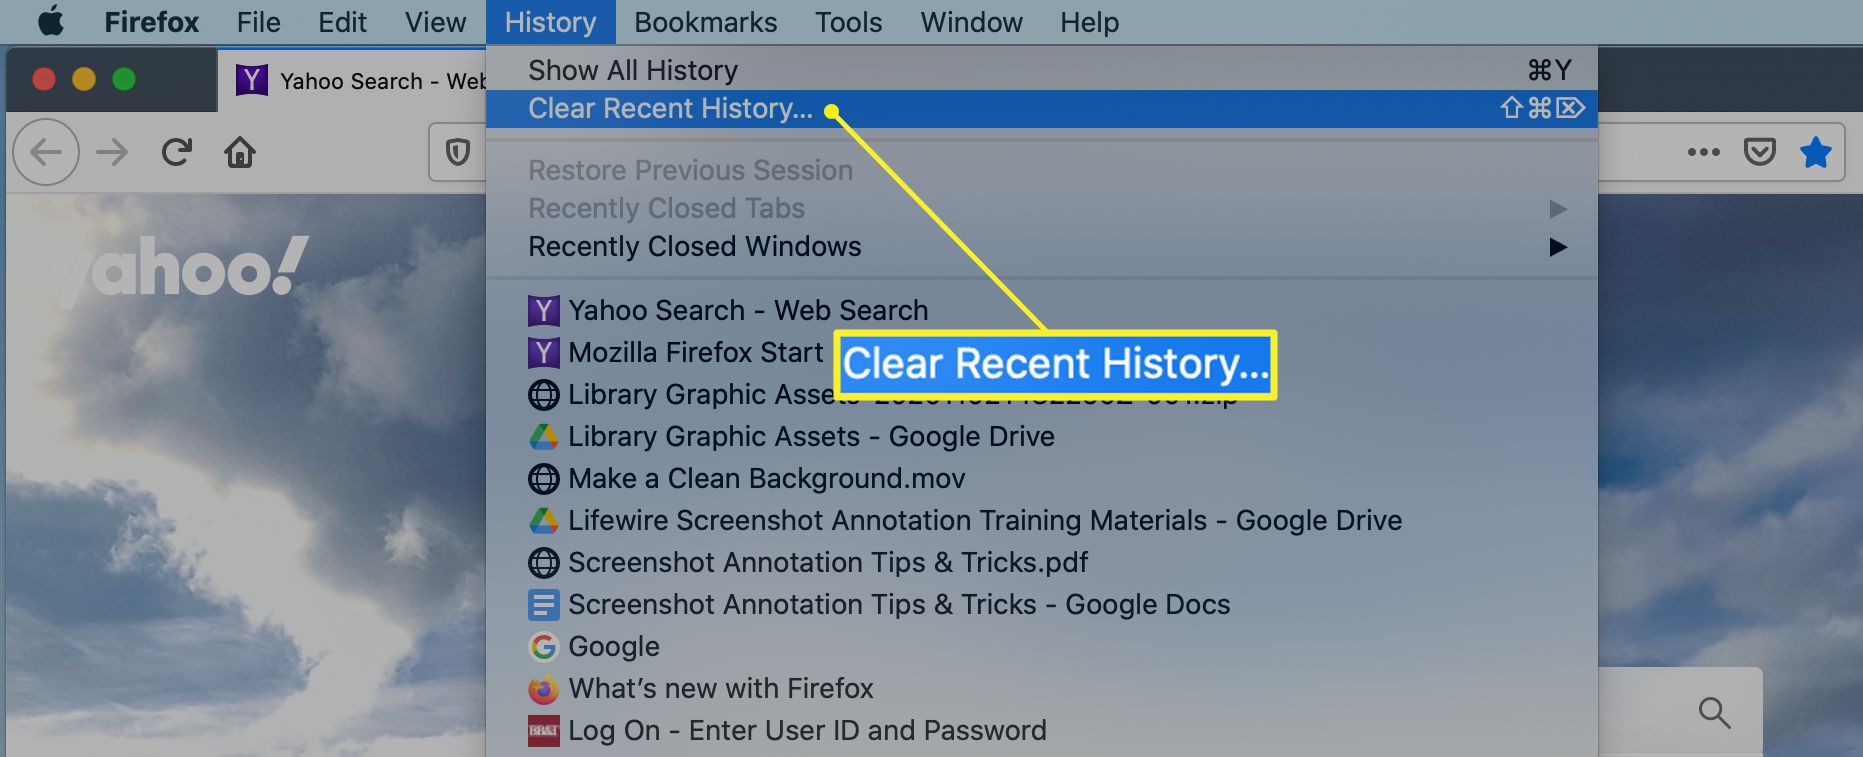 Firefox History menu with Clear Recent History highlighted